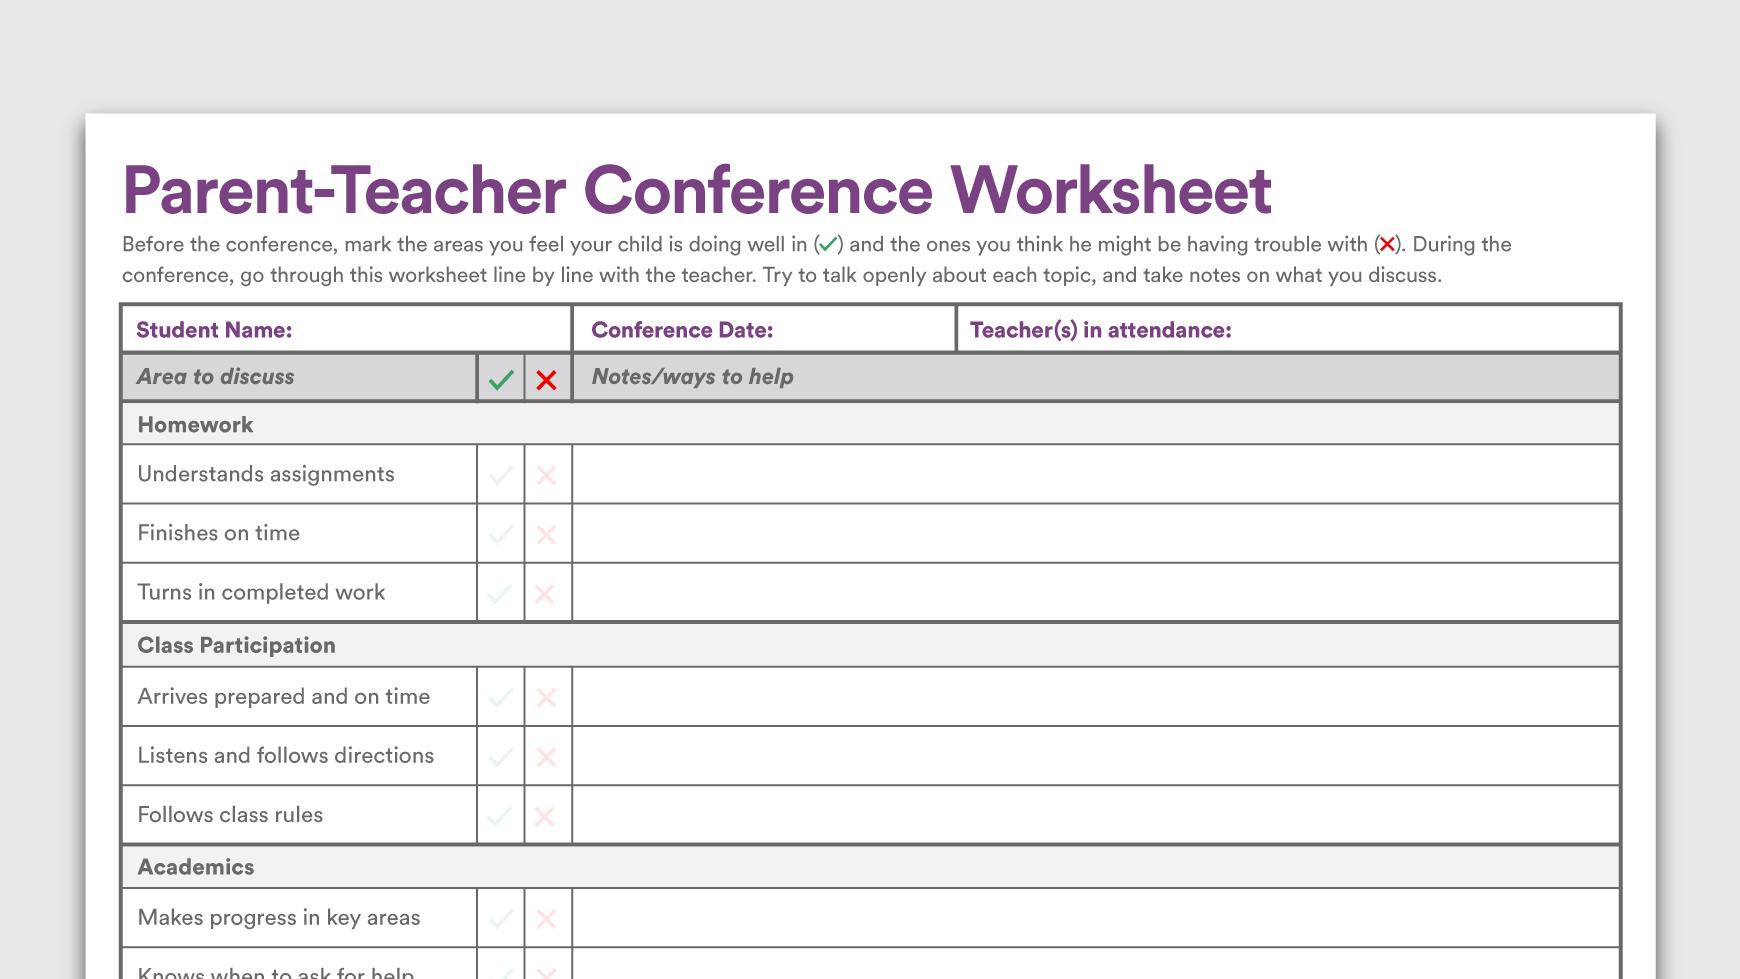 Printable Parent-Teacher Conference Worksheet - Free Printable Parent Information Sheet